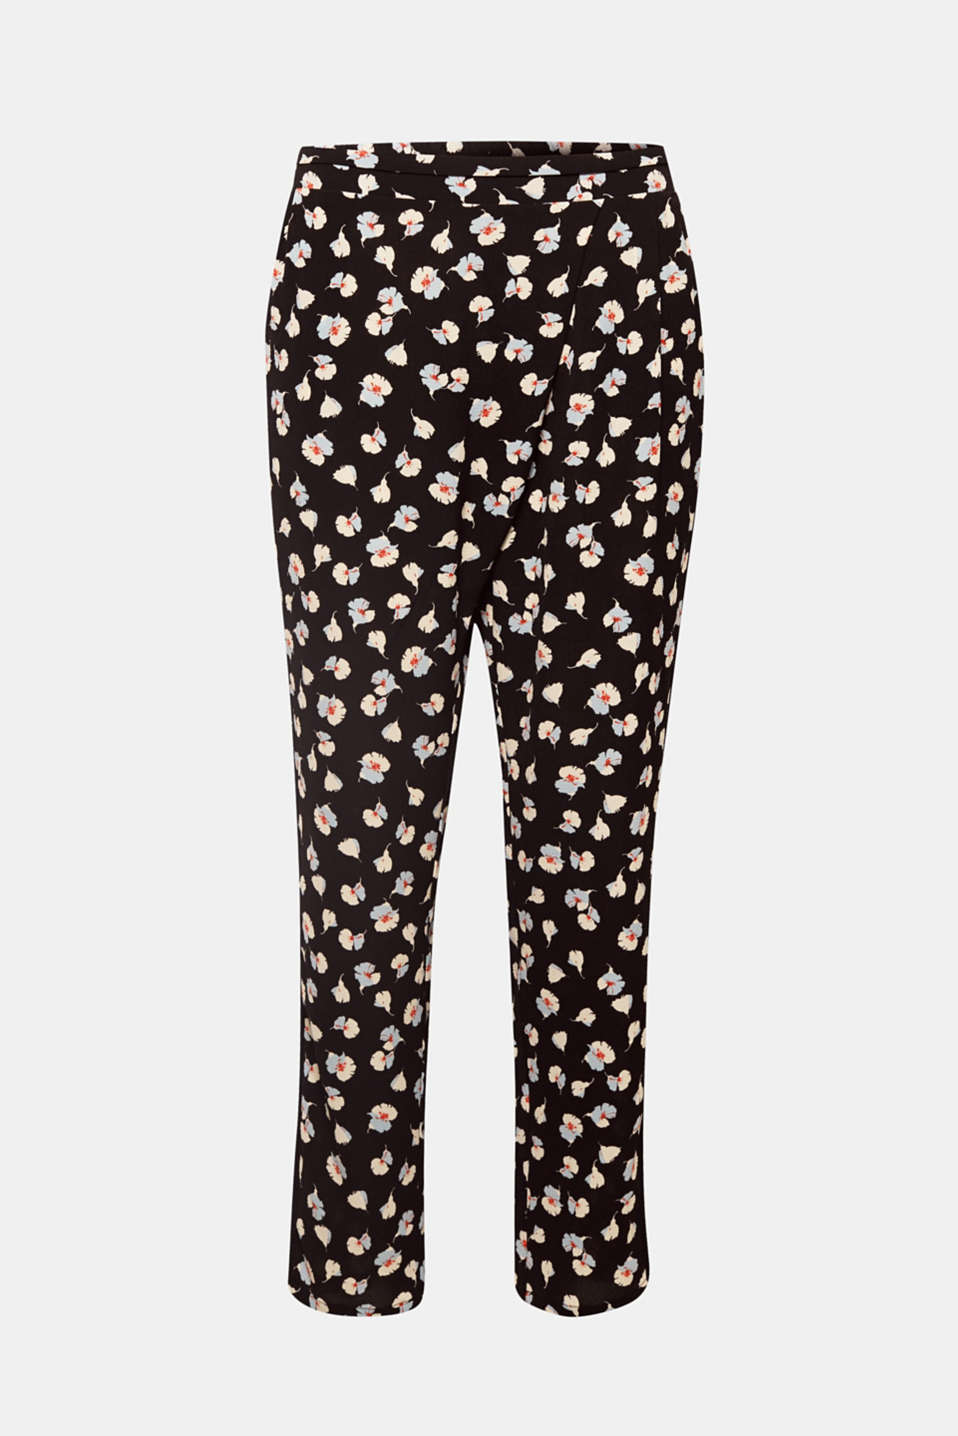 These flowing, draped tracksuit bottoms exude casual chic and enchant us with their romantic floral print and elegant crêpe fabric.